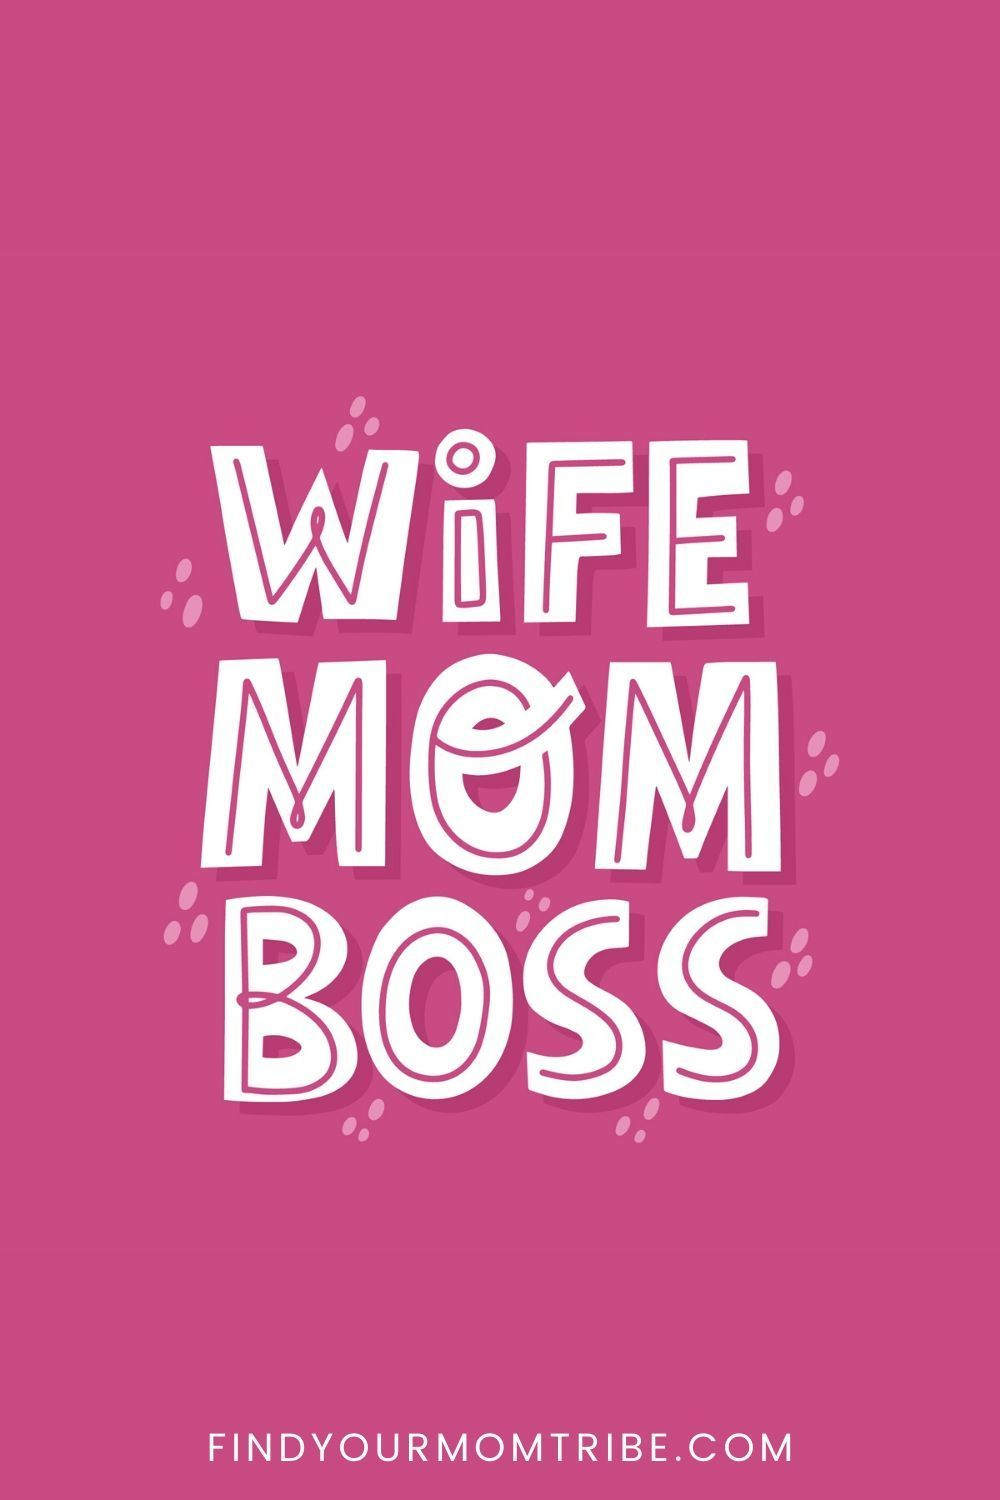 12 Best Business Ideas For Stay At Home Moms Of 2020 in ...